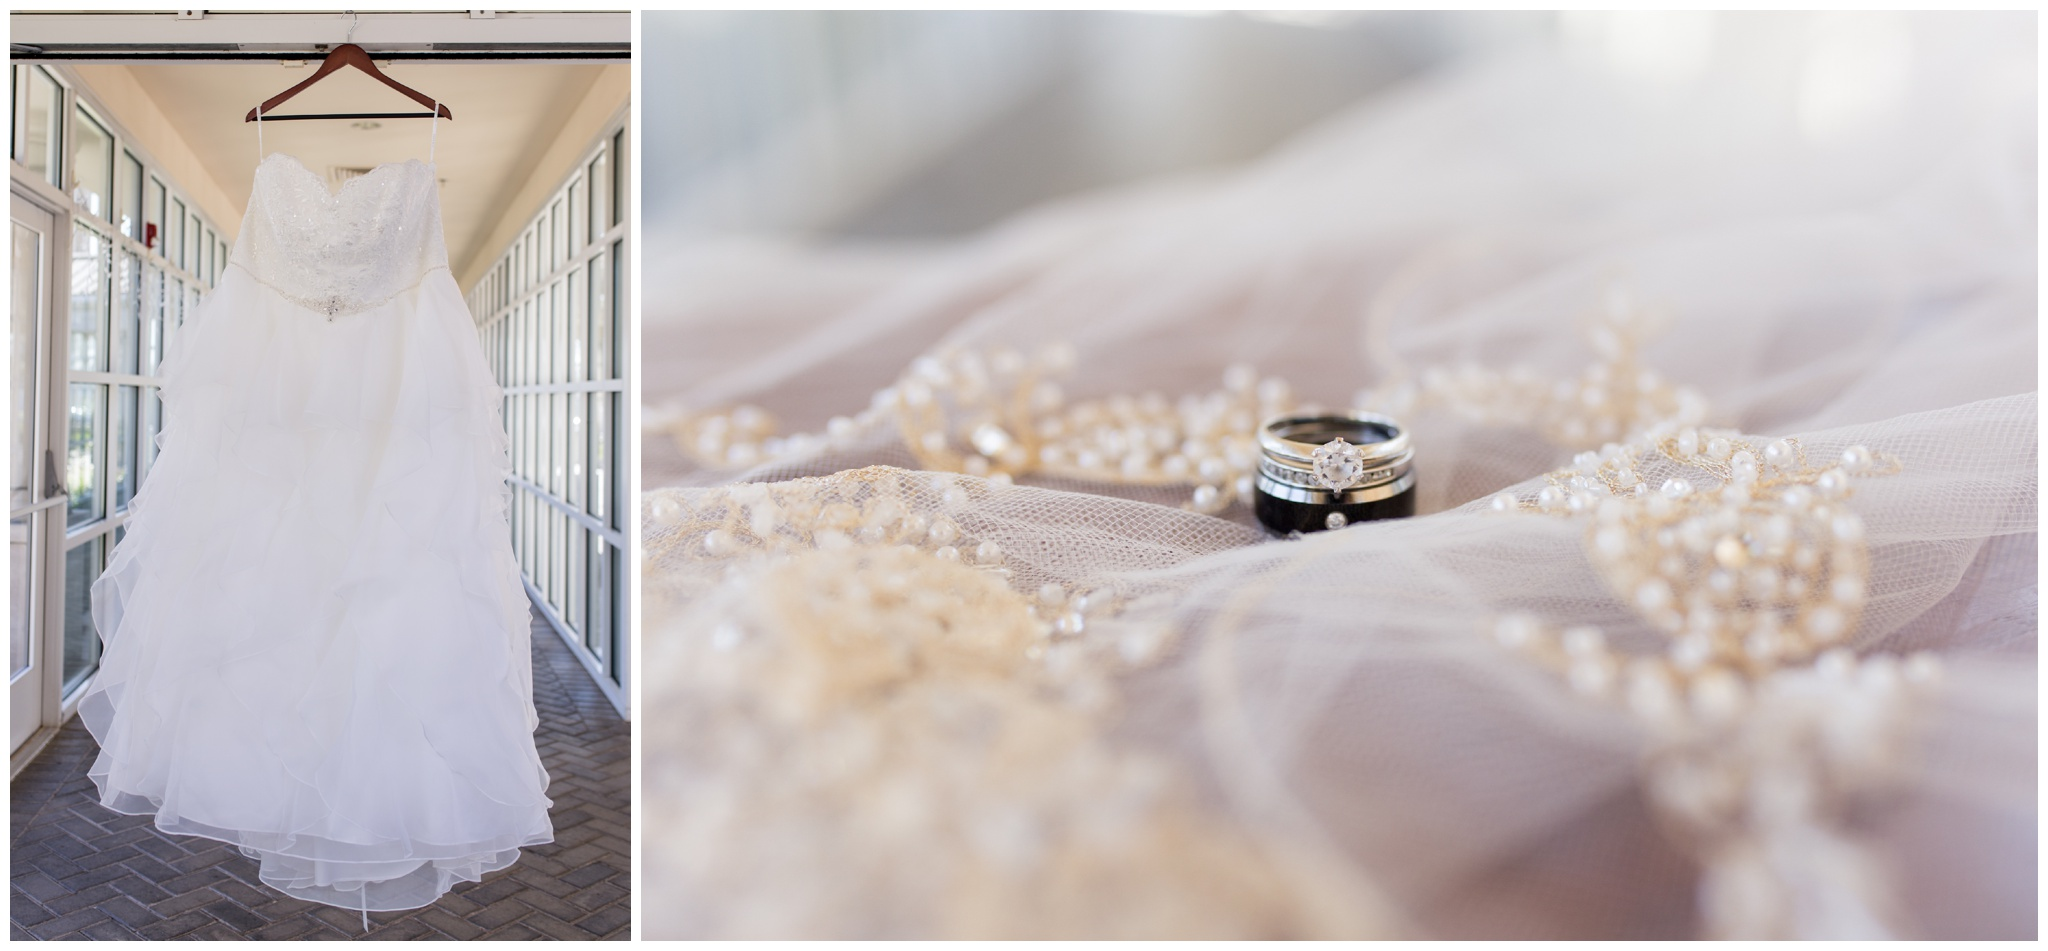 Community Life Center Indianapolis wedding photography wedding rings and veil